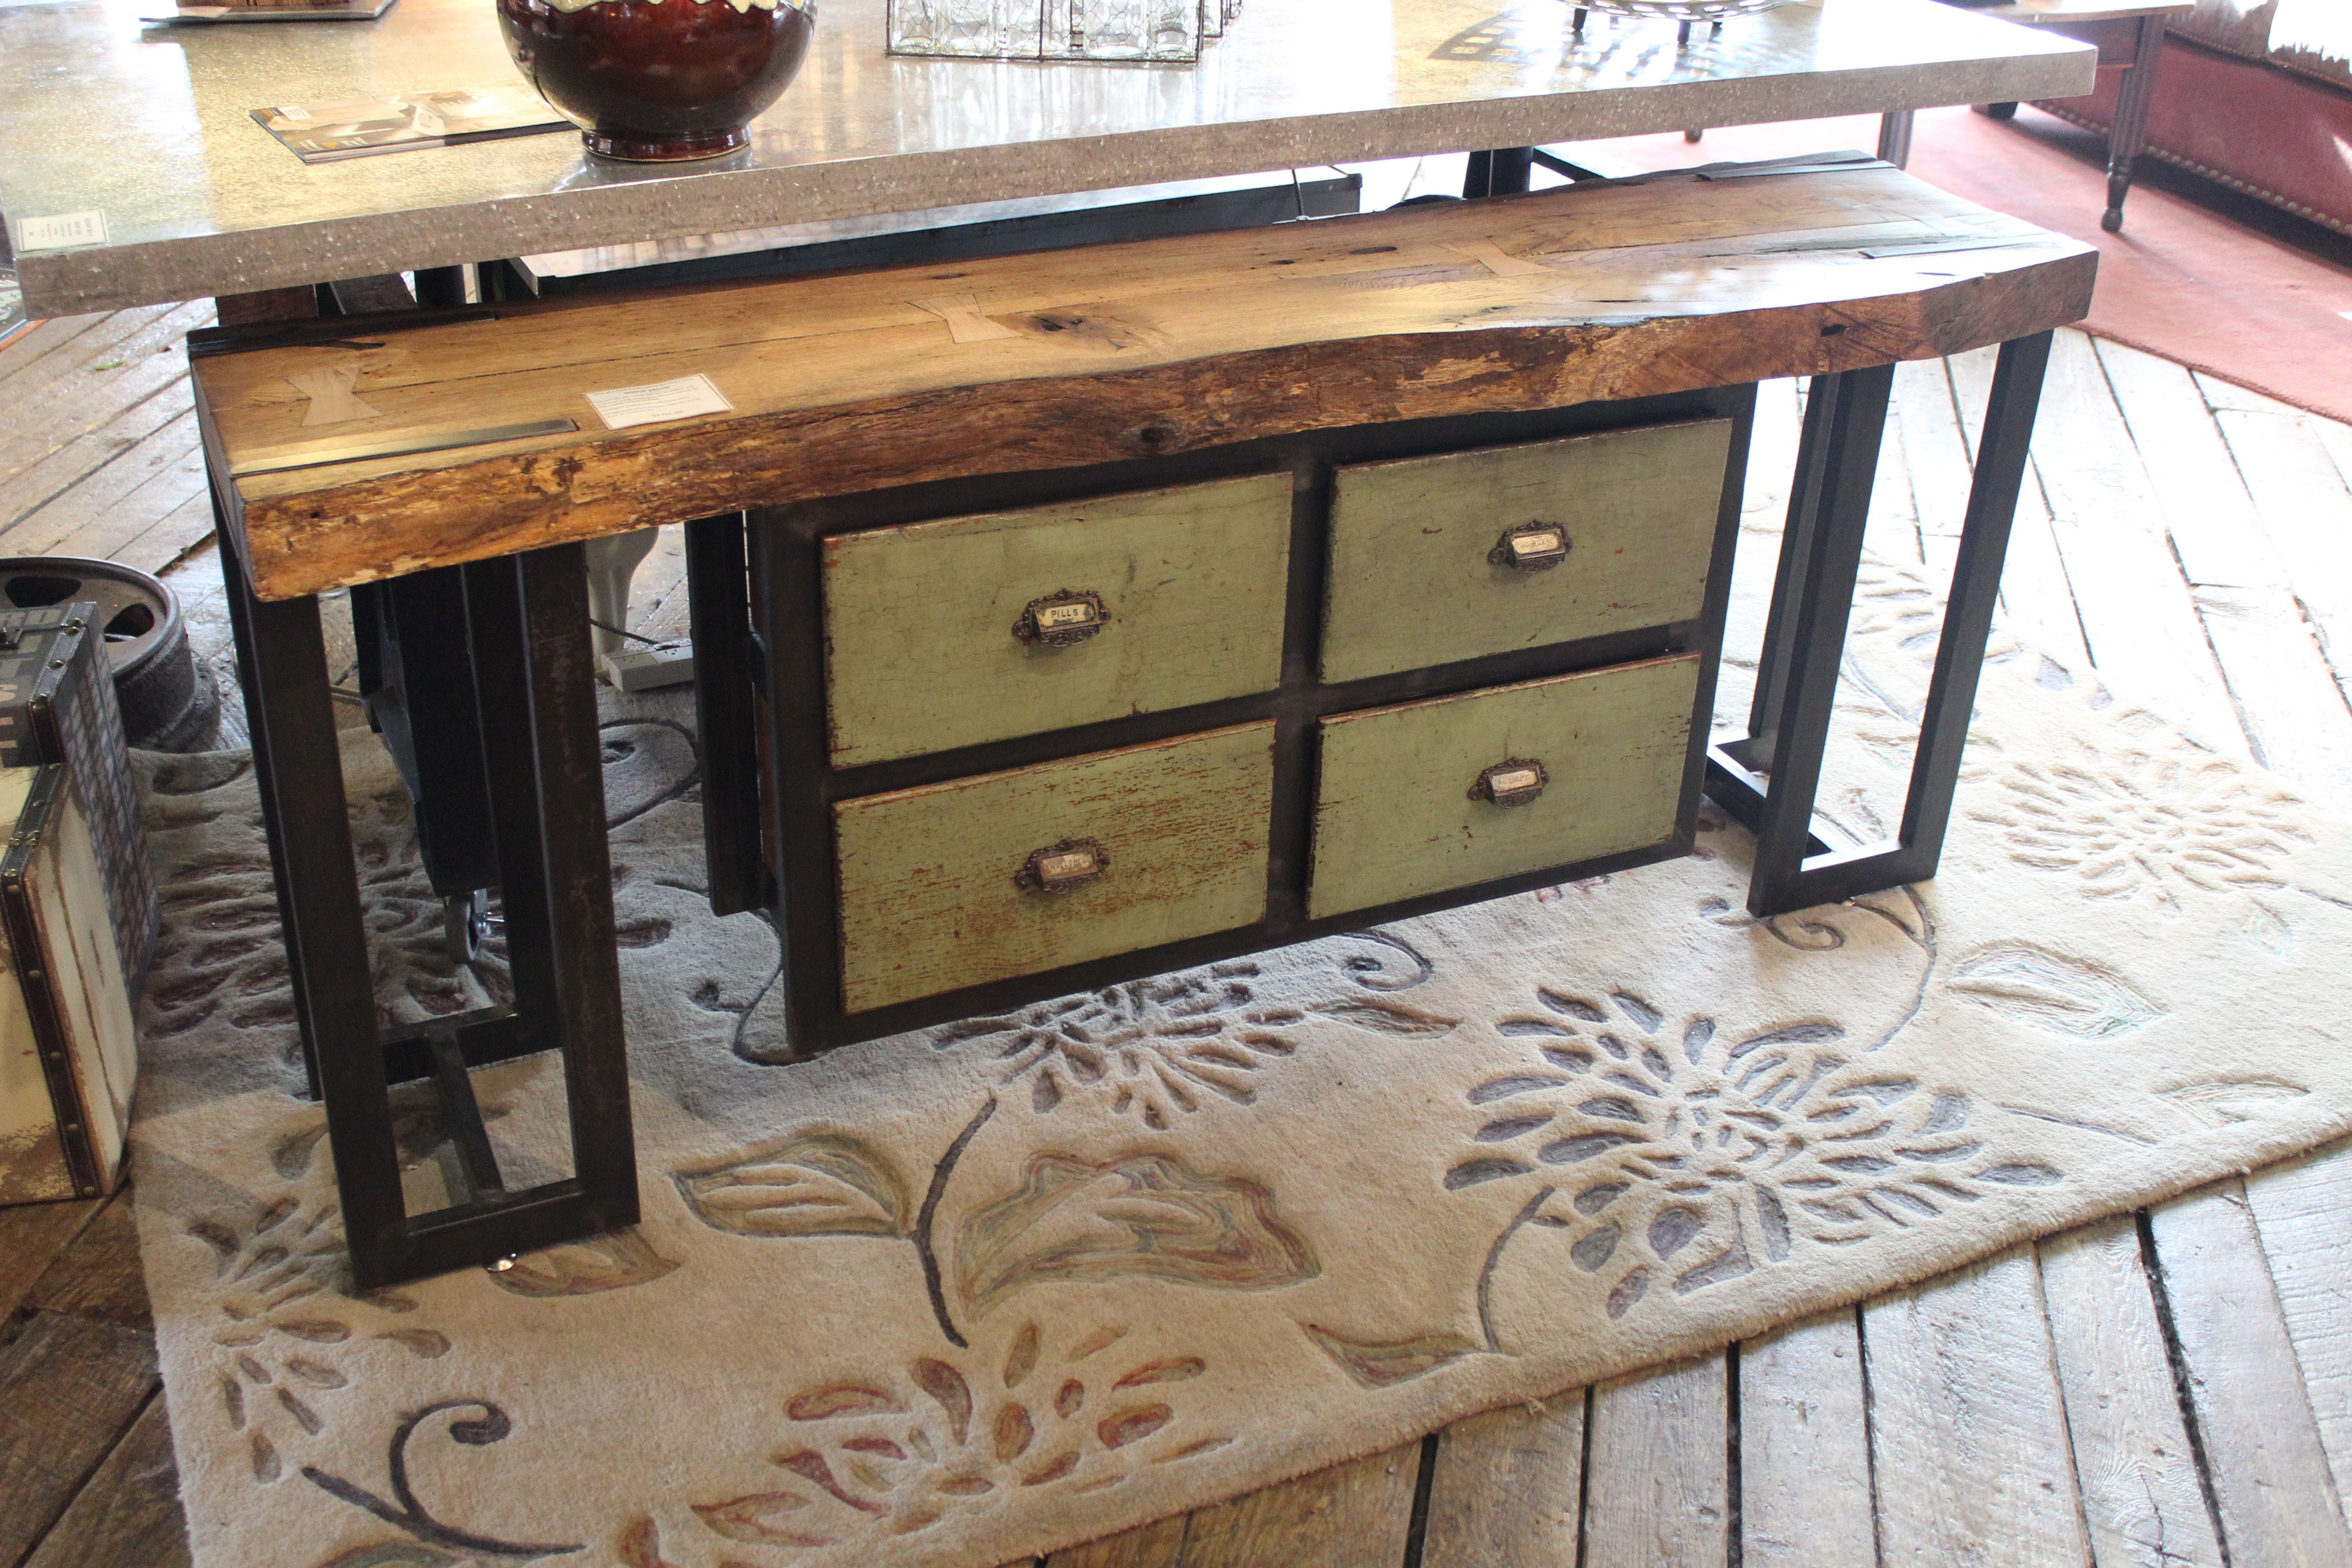 sofa table made from live edge oak with butterfly joints, custom welded legs, and reclaimed vintage apothecary drawers in a custom metal frame.